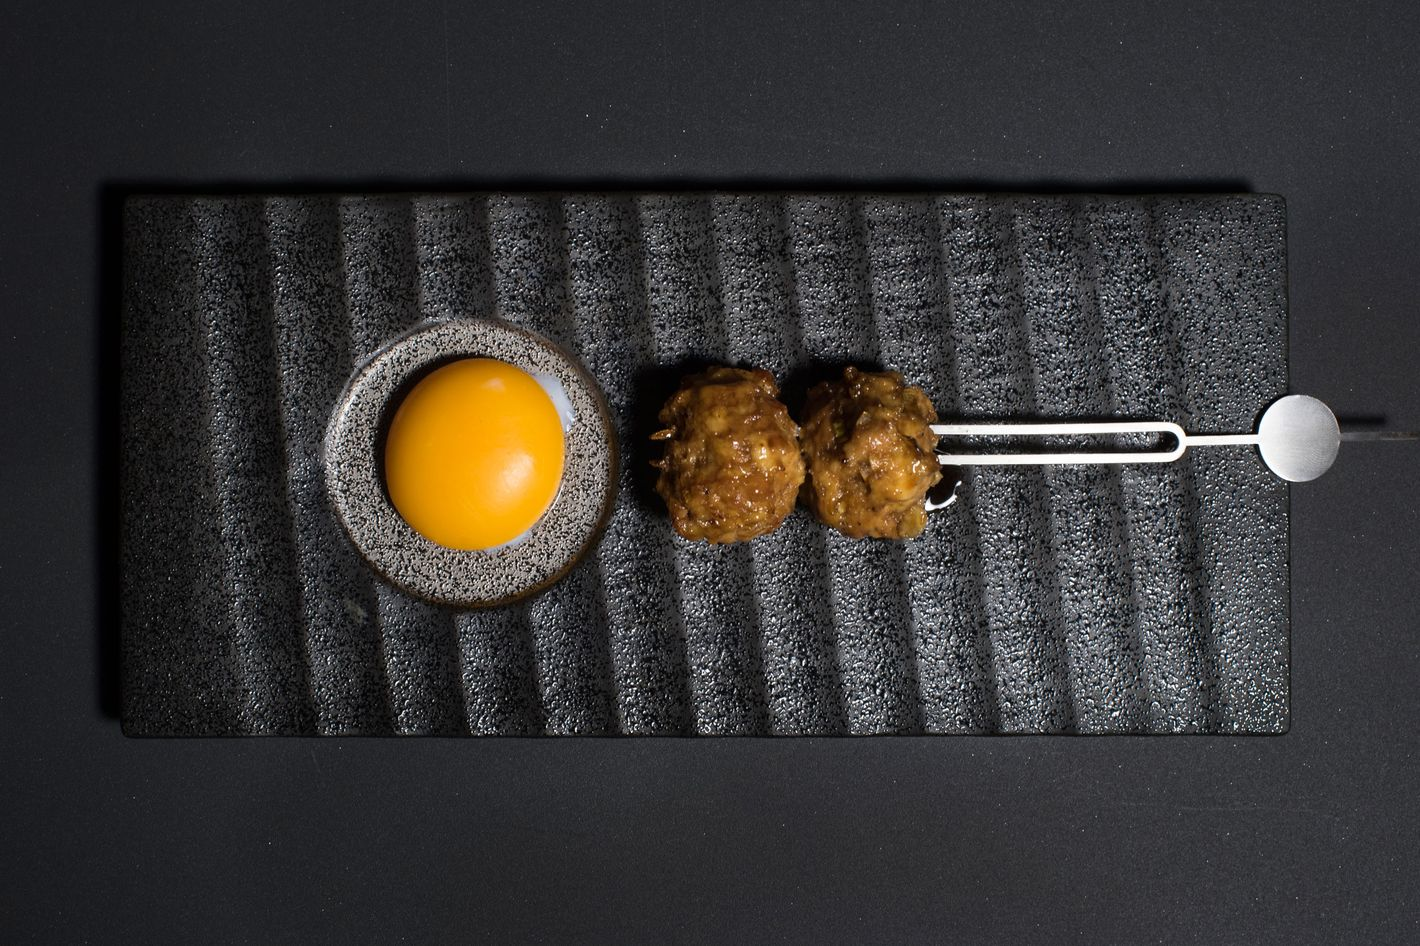 Tsukune: chicken meatball, egg yolk.